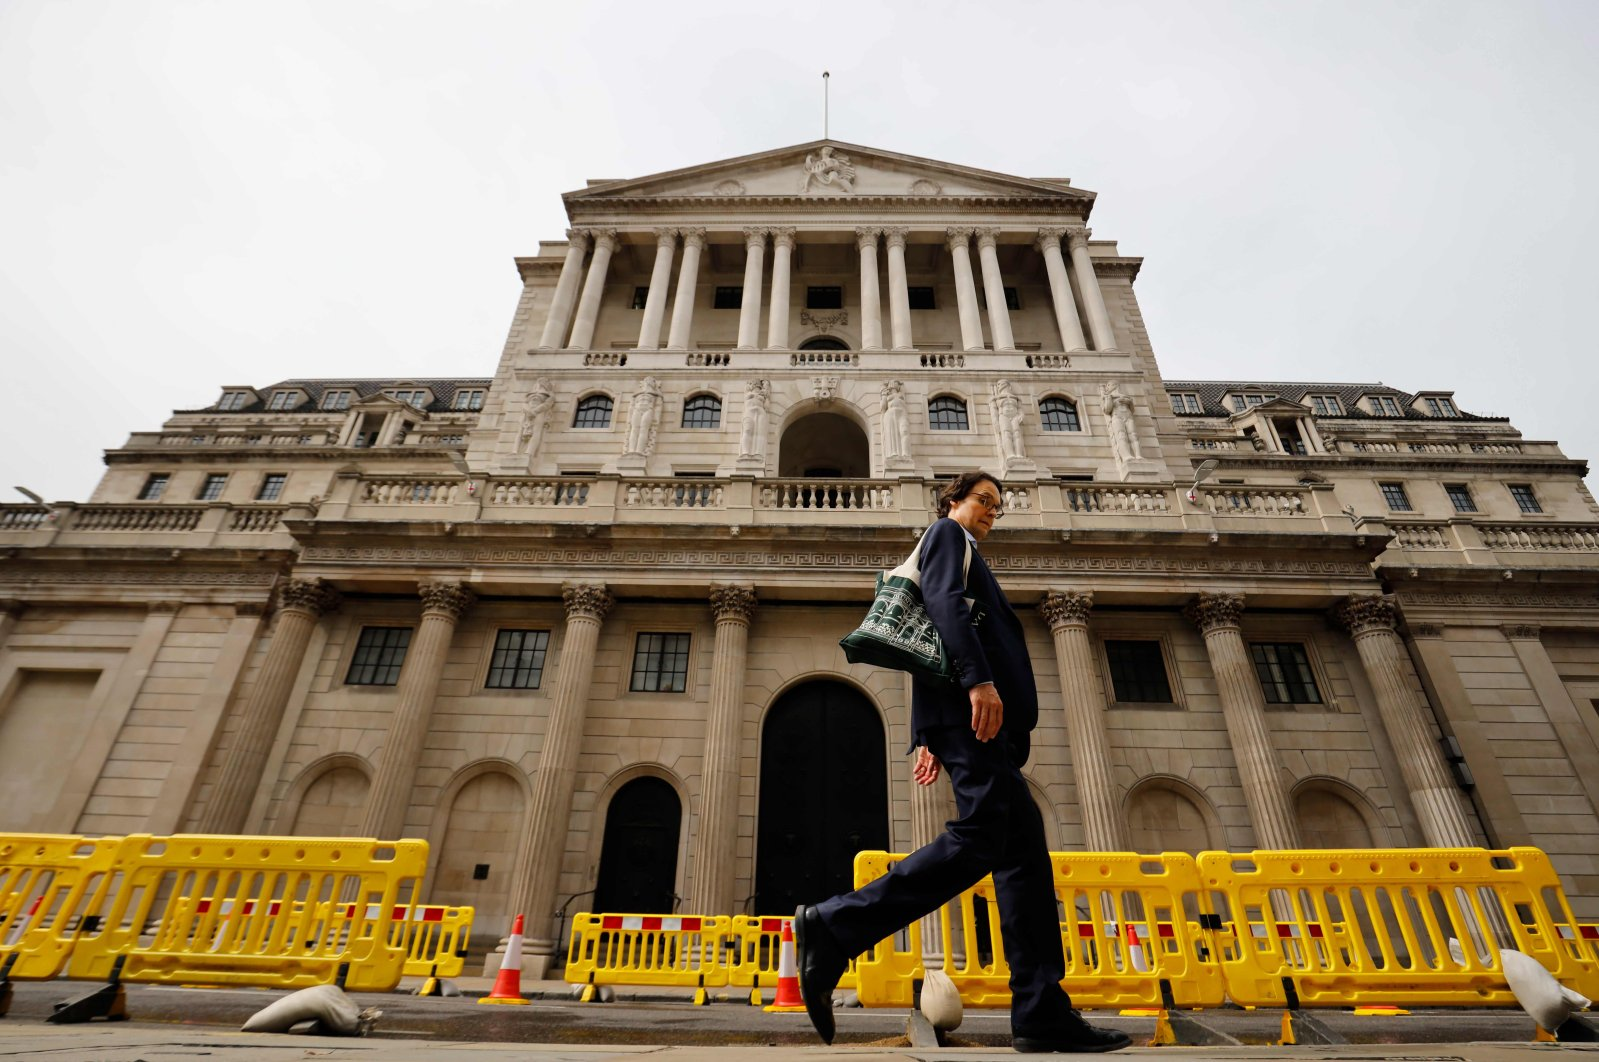 A pedestrian walks past the Bank of England in London during the coronavirus outbreak, June 17, 2020. (AFP Photo)